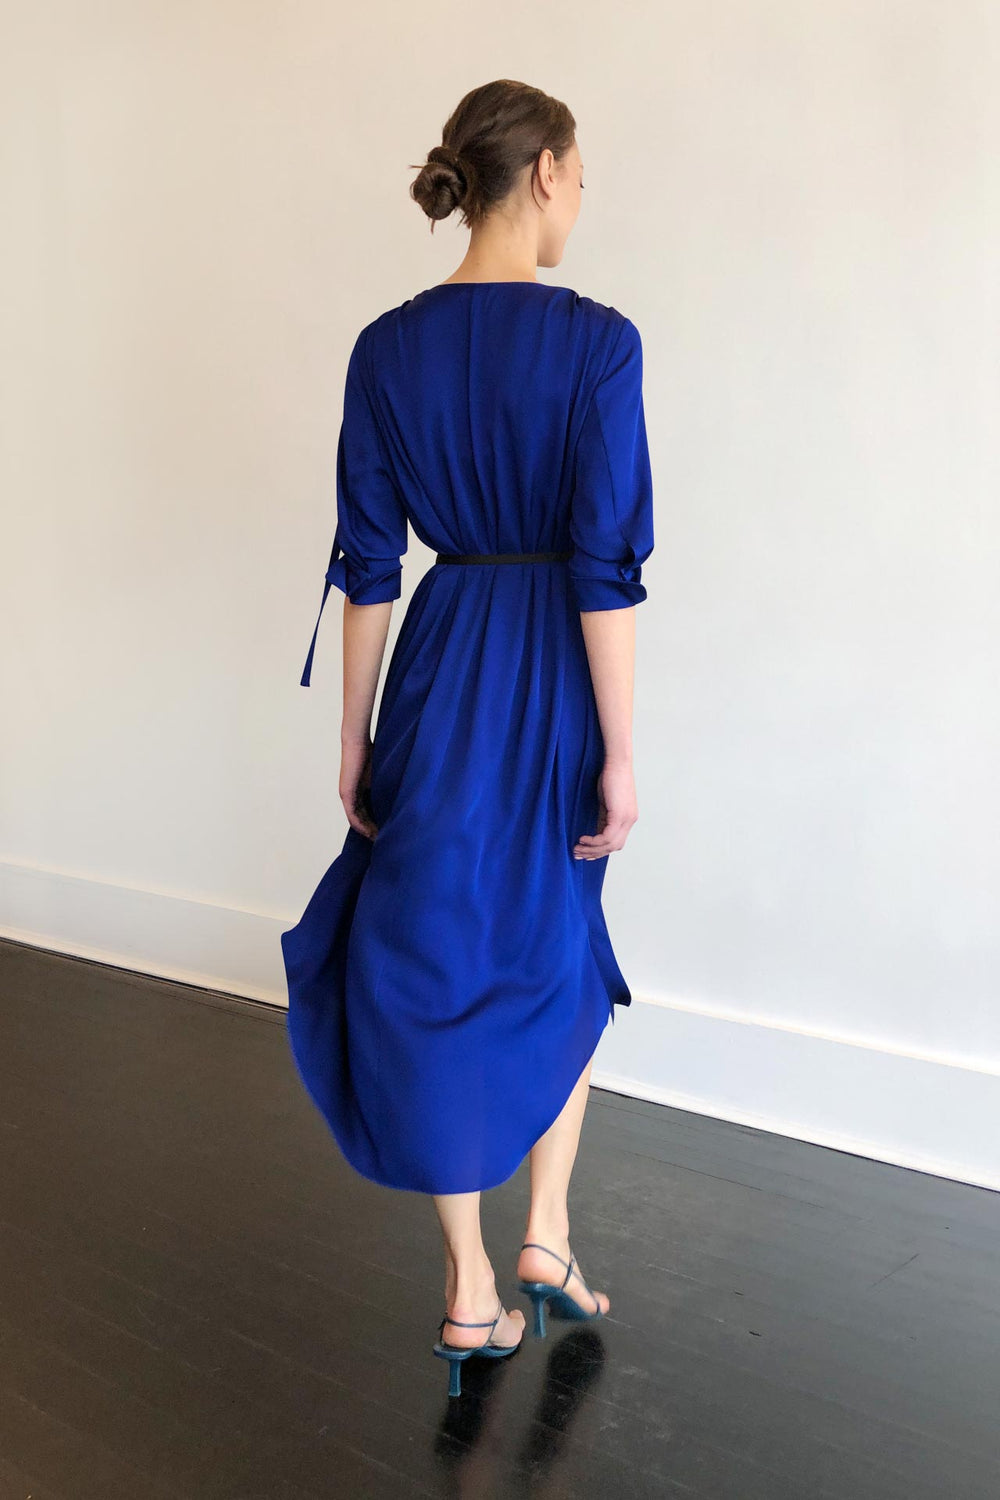 Fashion Designer CARL KAPP collection | Martini Onesize Fits All silk dress Electric Blue | Sydney Australia